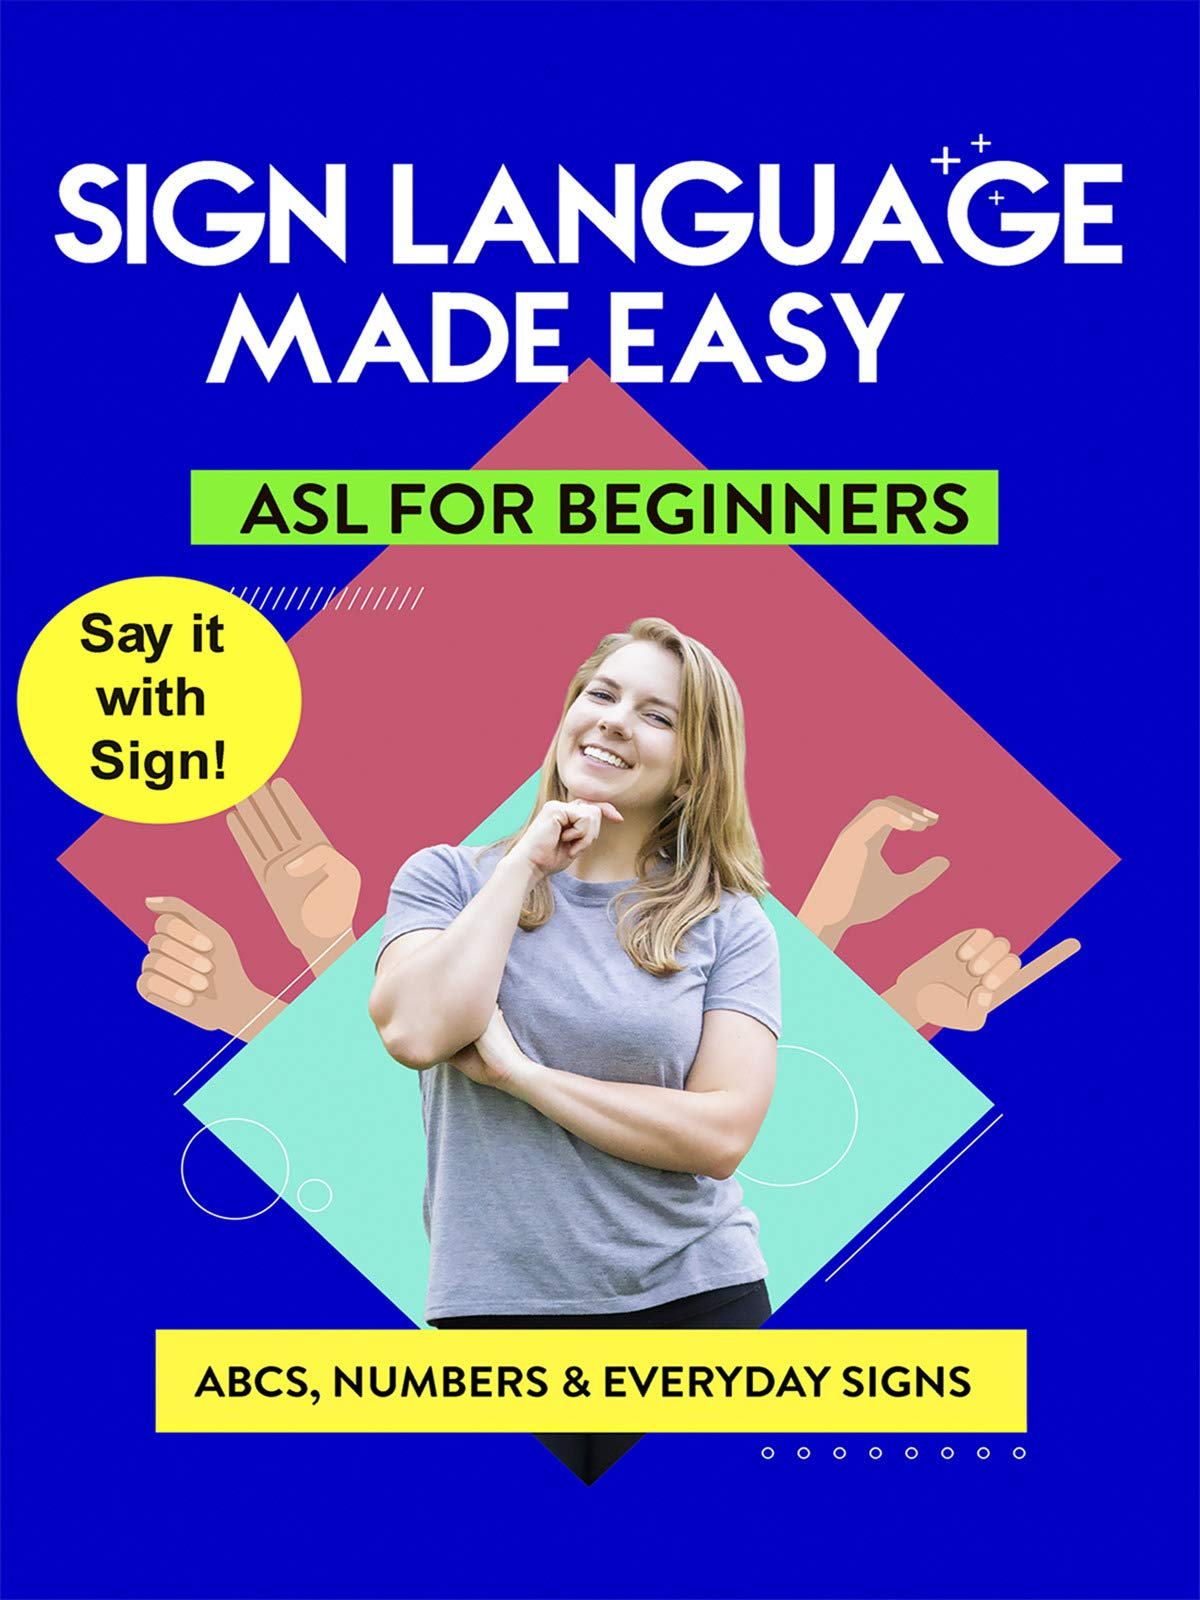 American Sign Language Made Easy - Learn ABCs, Numbers, Fingerspelling, Colors, Grammar Basics & Everyday Useful Signs on Amazon Prime Instant Video UK